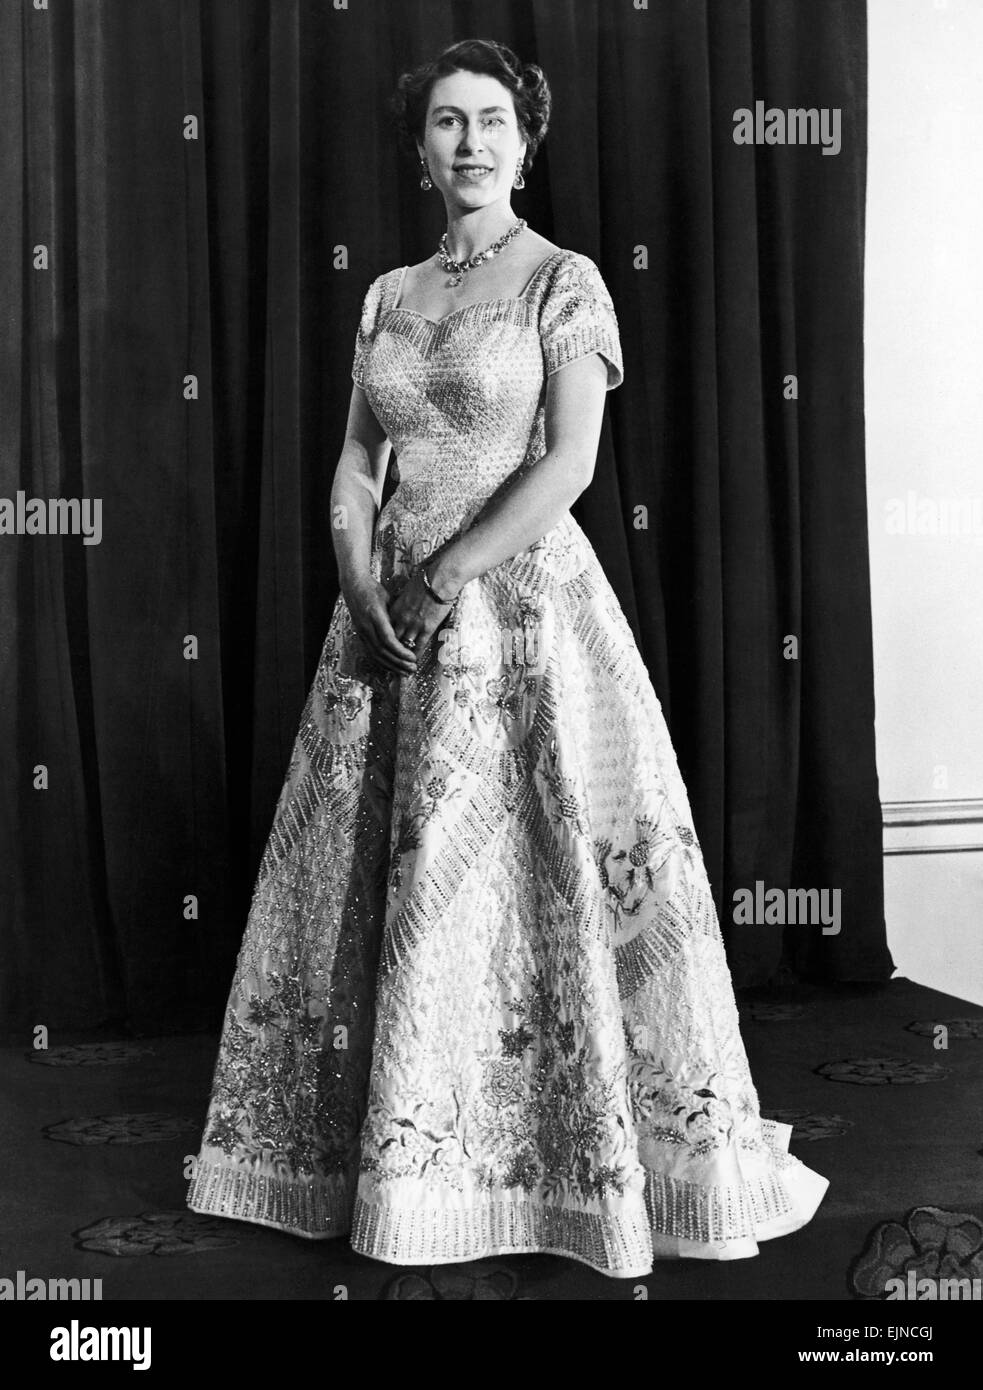 queen elizabeth ii coronation portrait high resolution stock photography and images alamy https www alamy com stock photo queen elizabeth official portrait for the coronation 1953 local caption 80376146 html